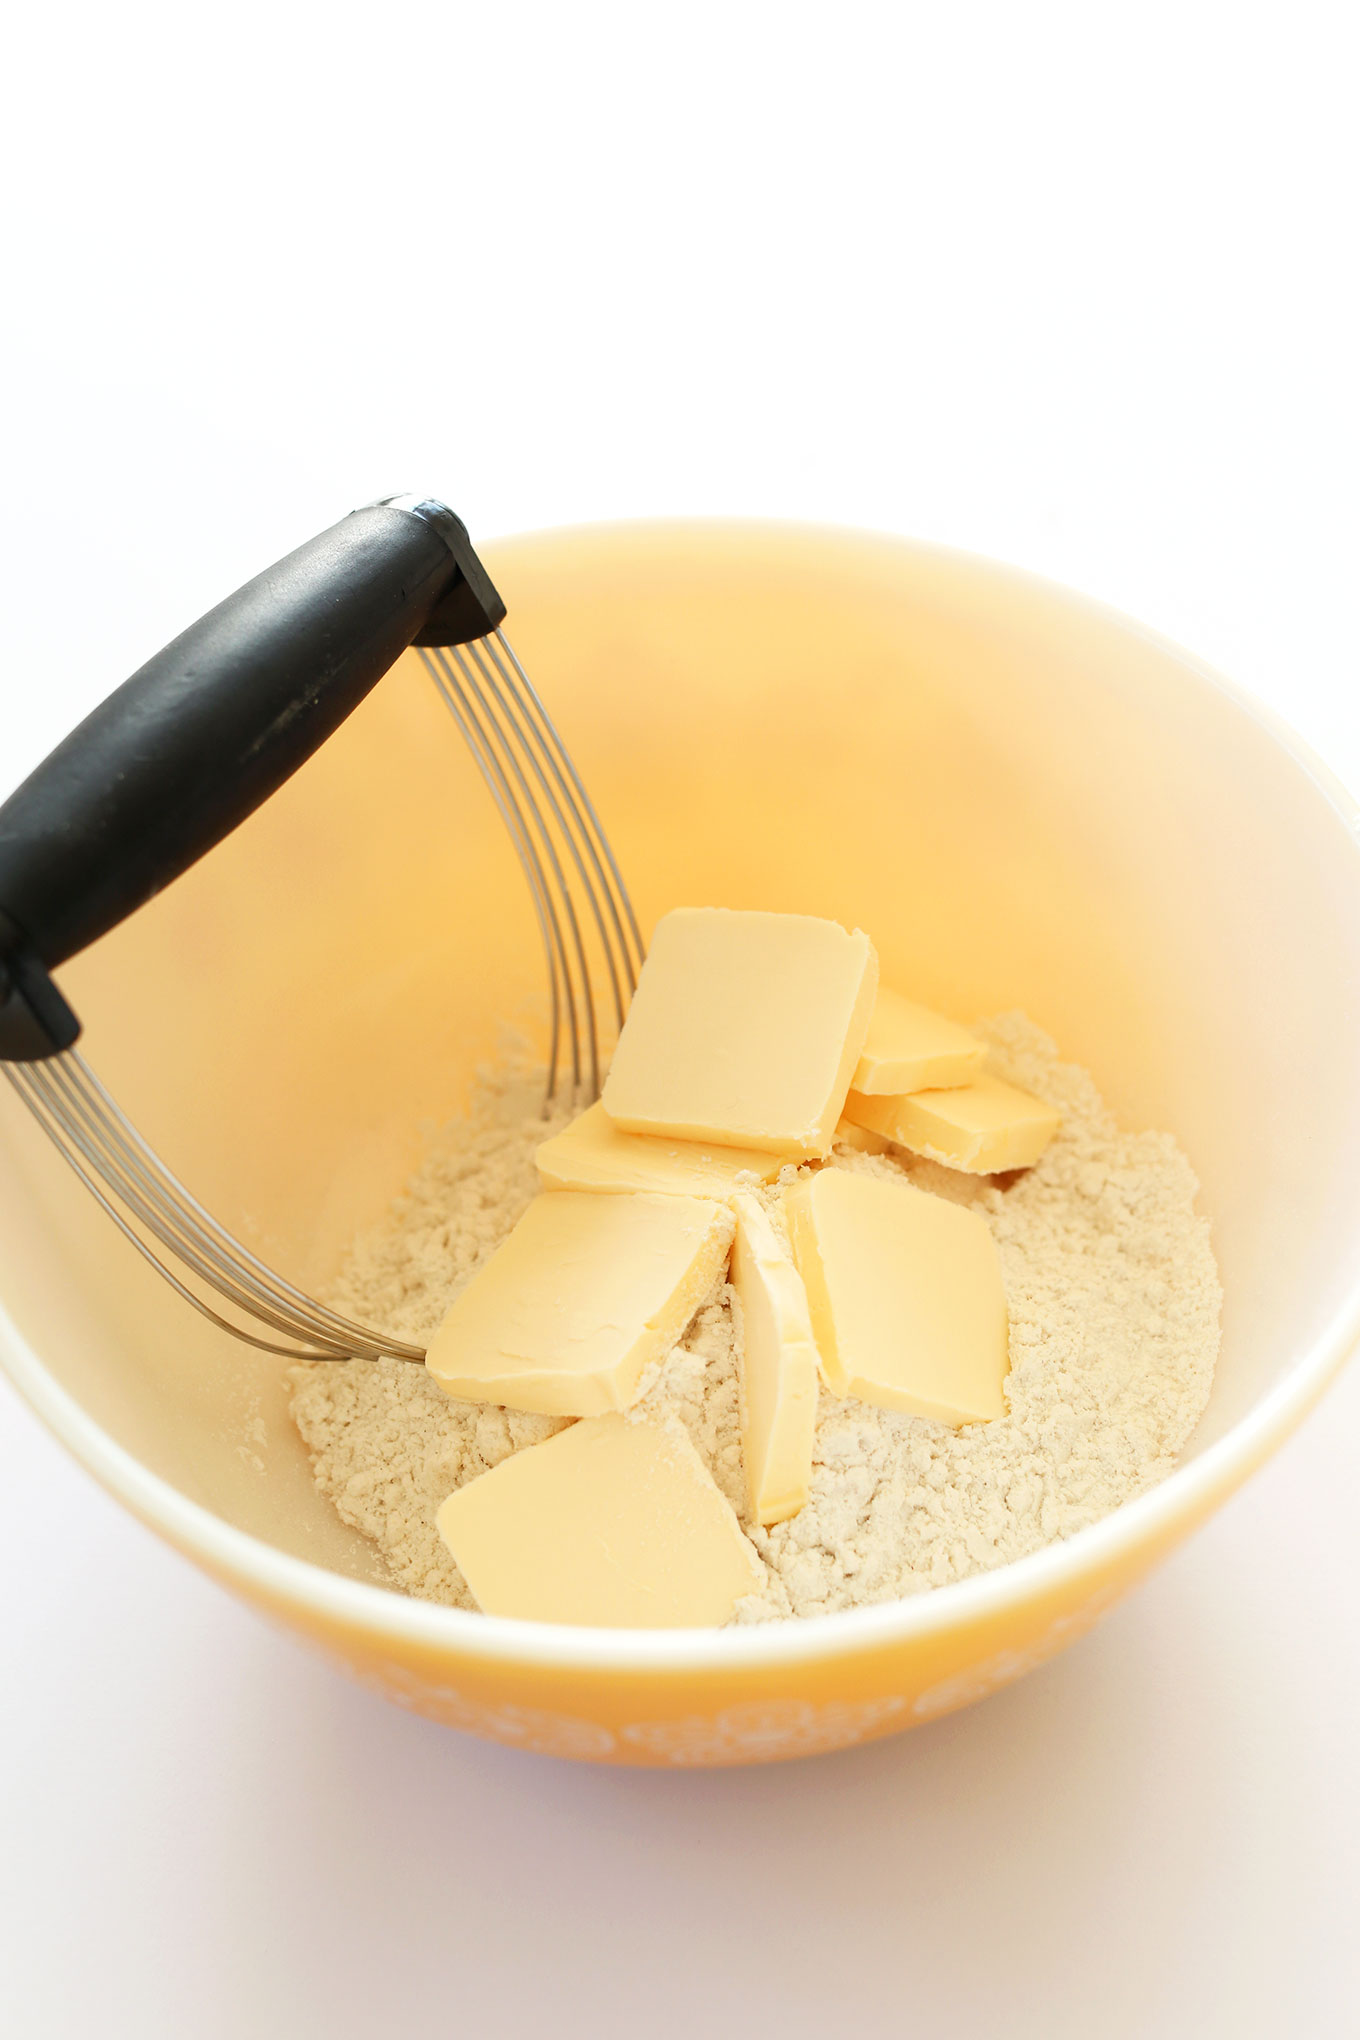 Pastry cutter to in a bowl with gluten-free flour and slices of vegan butter